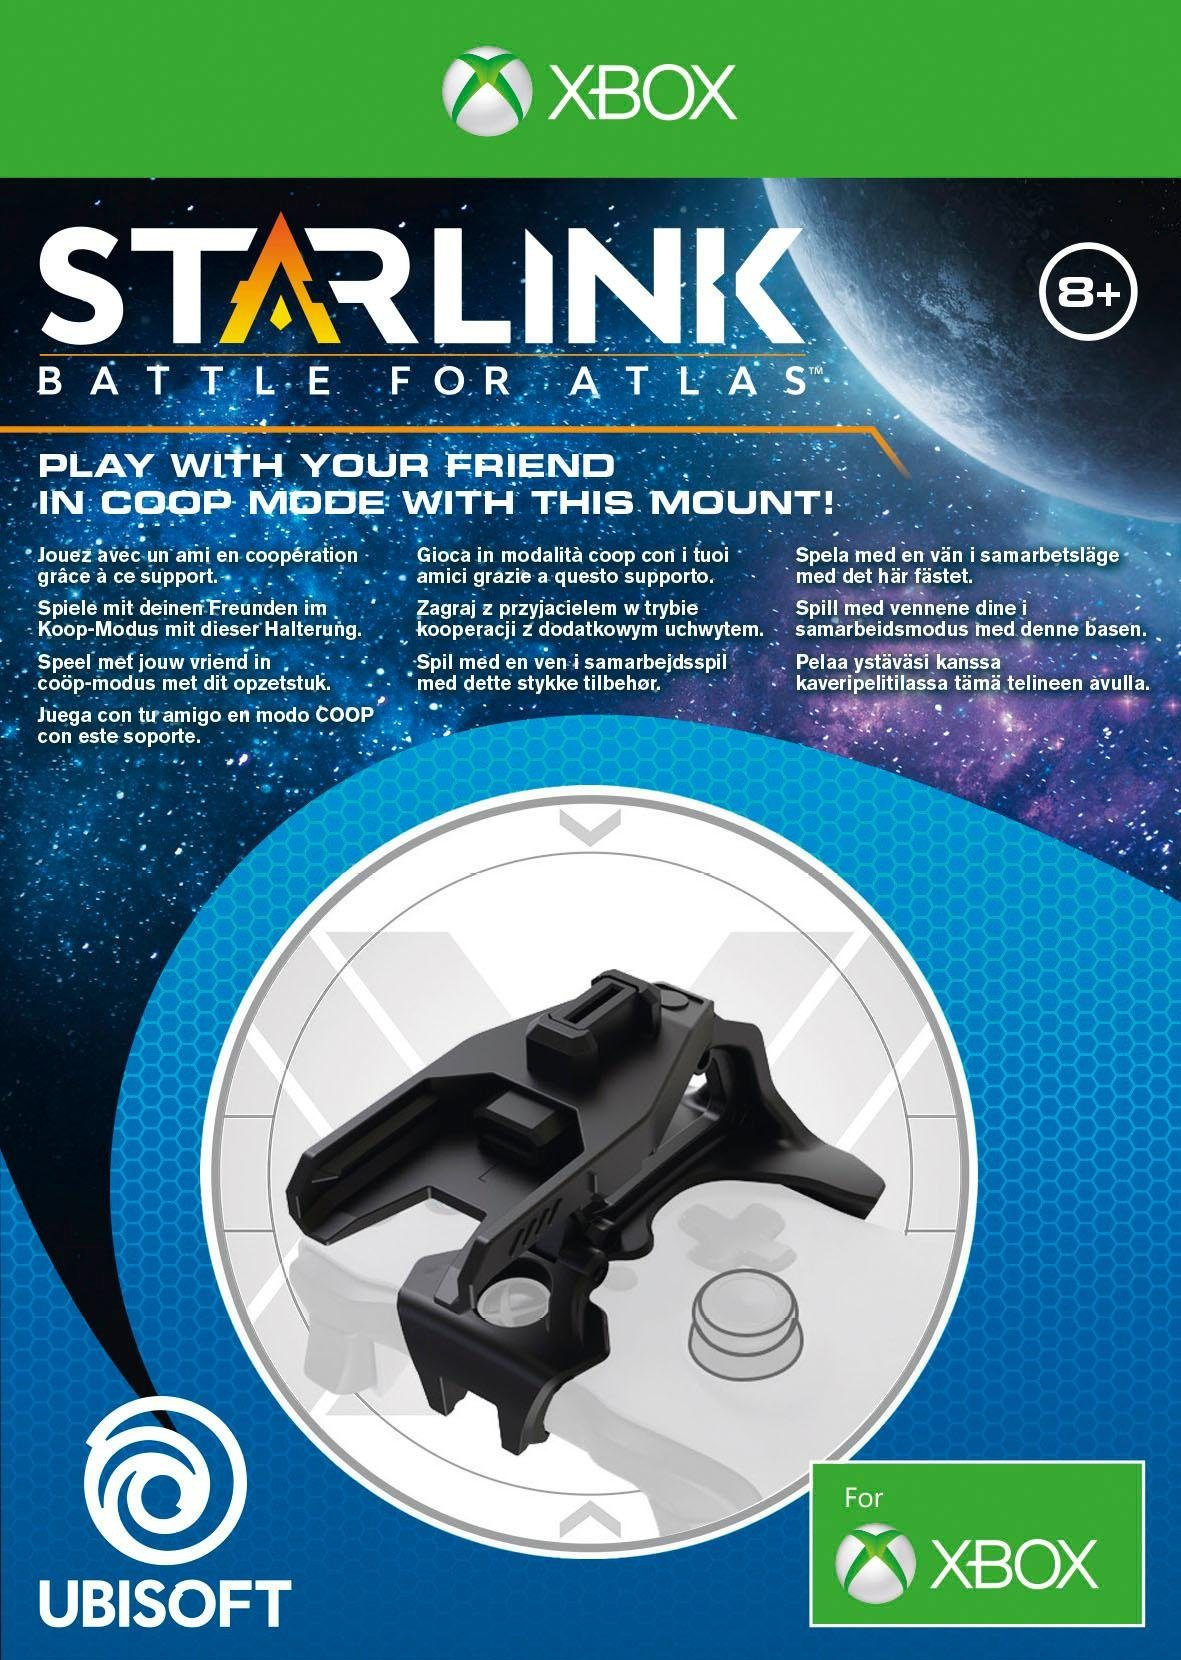 Xbox One Starlink MOUNT CO-OP Pack Controller Adapter